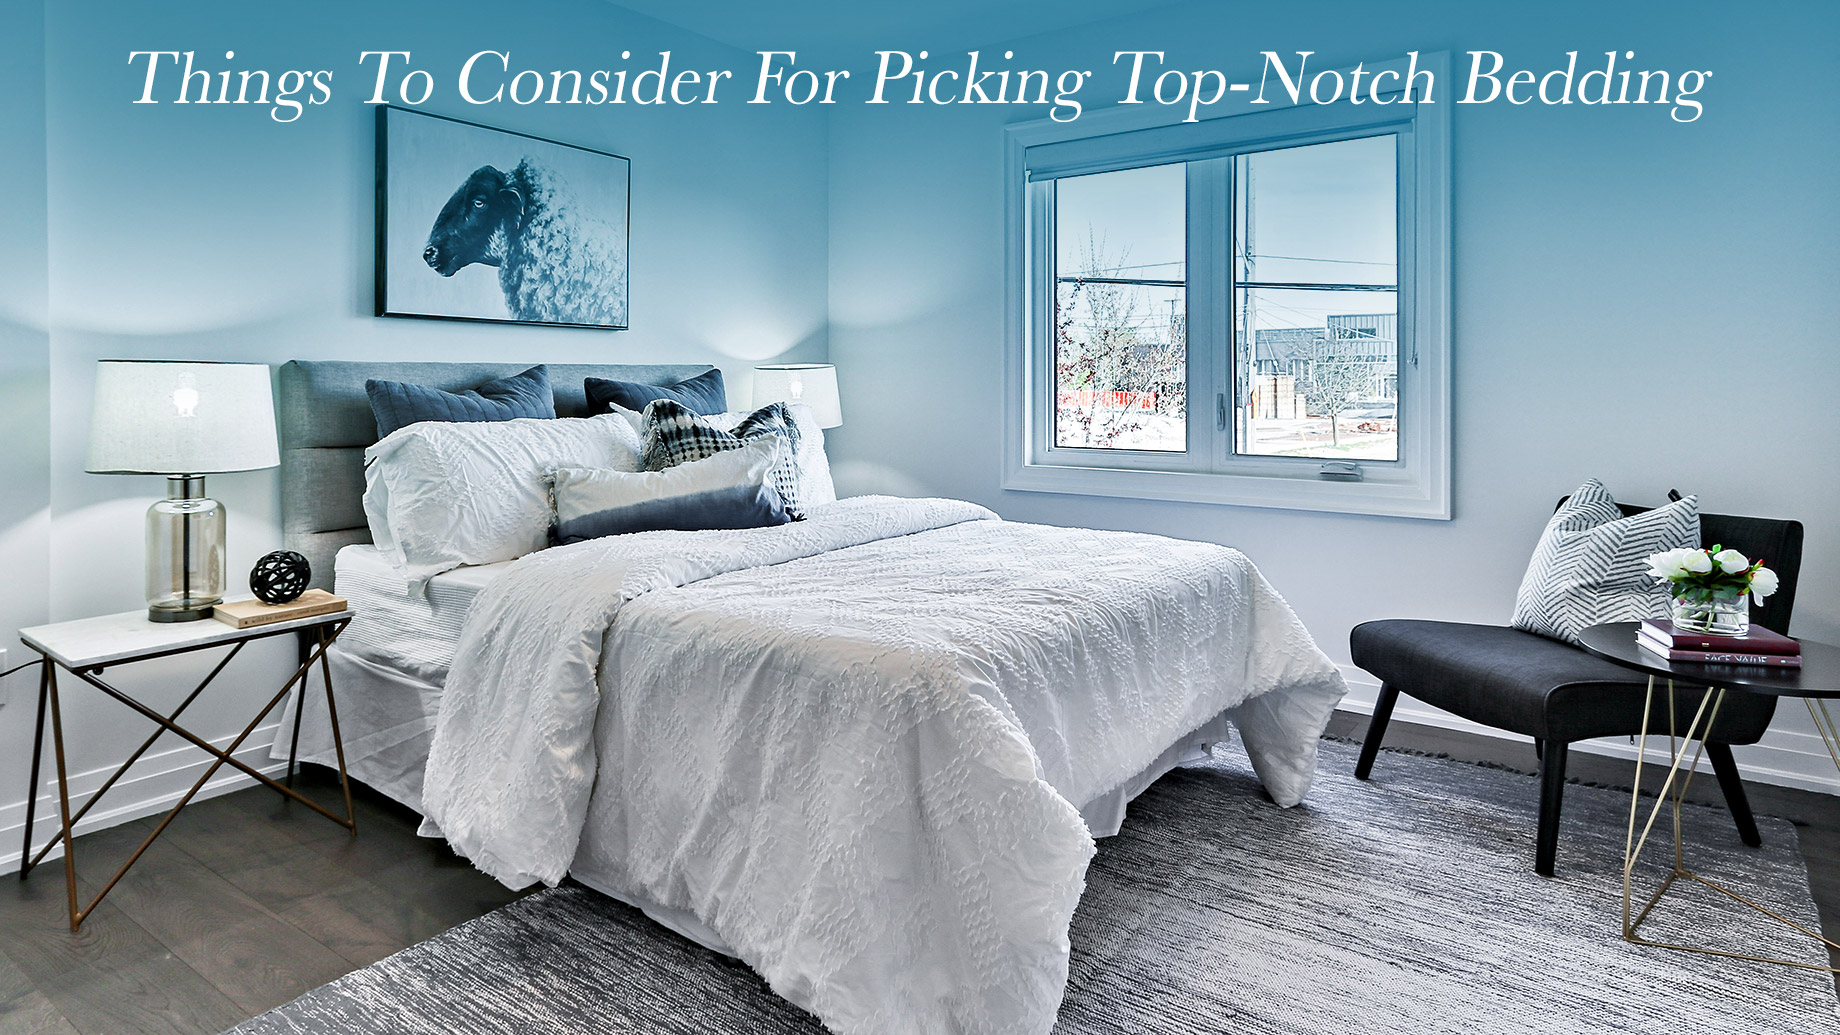 Things To Consider For Picking Top-Notch Bedding